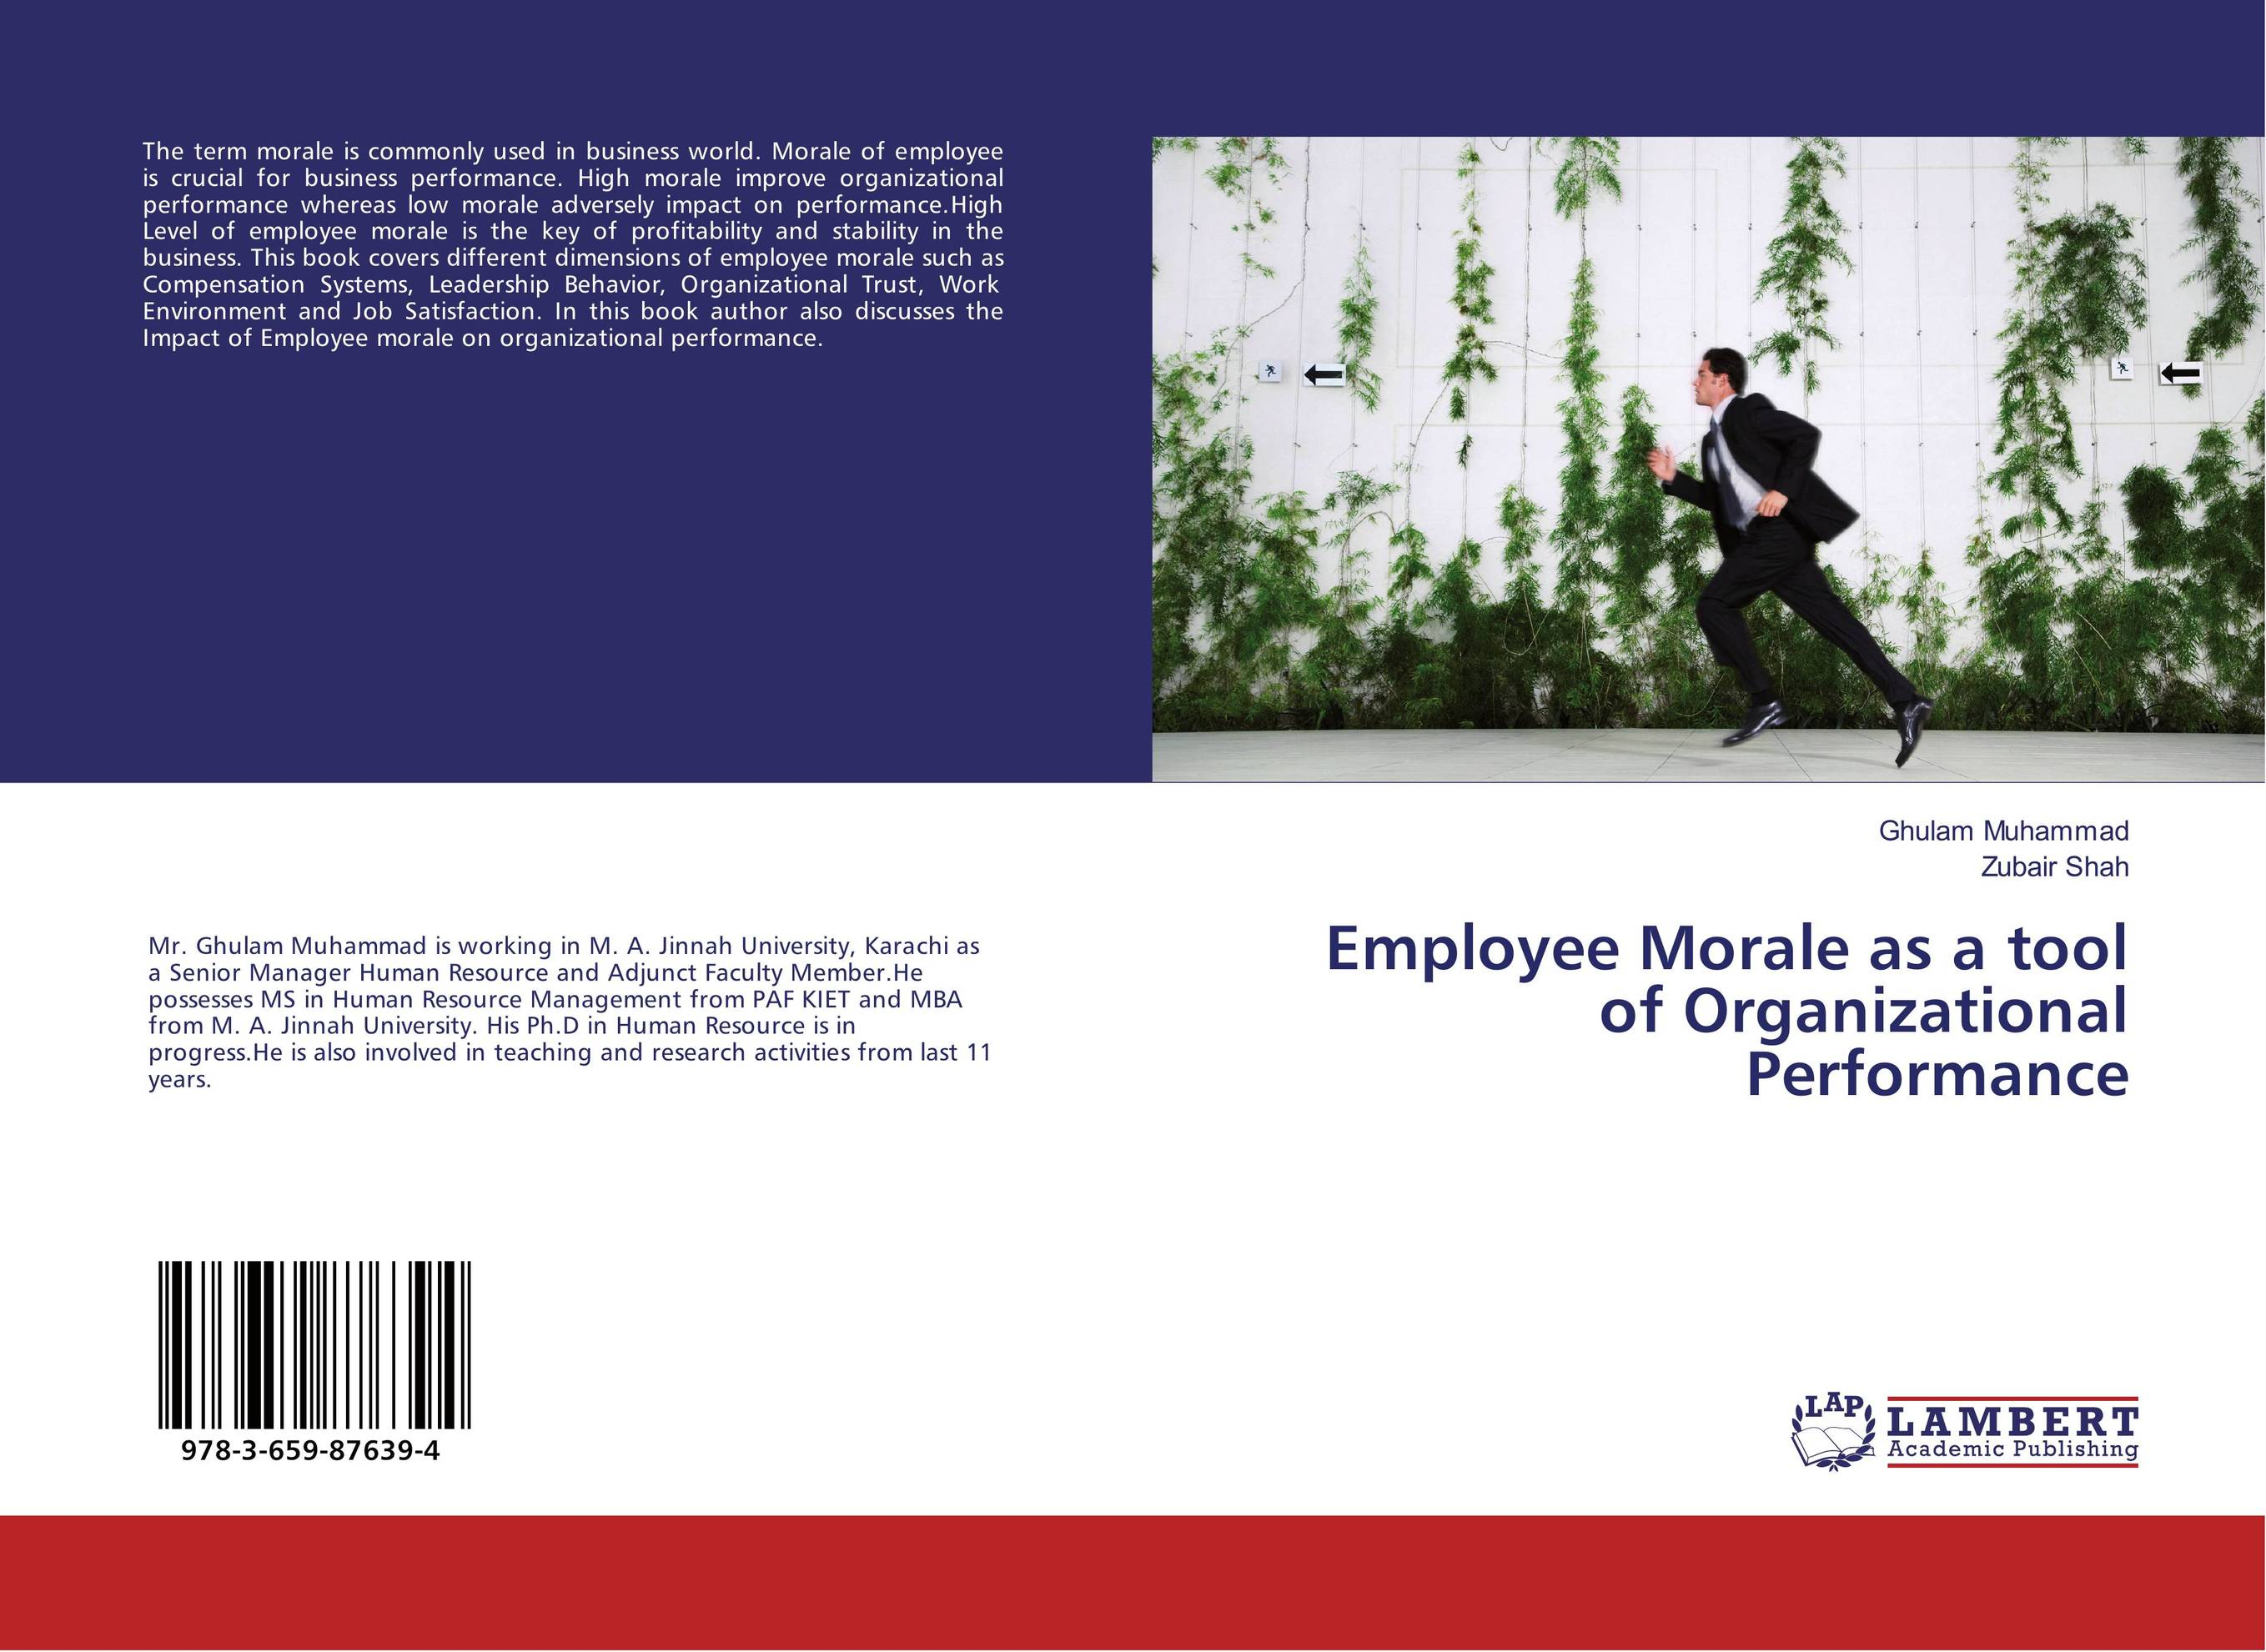 Employee Morale as a tool of Organizational Performance the impact of motivation related reform on employee performance